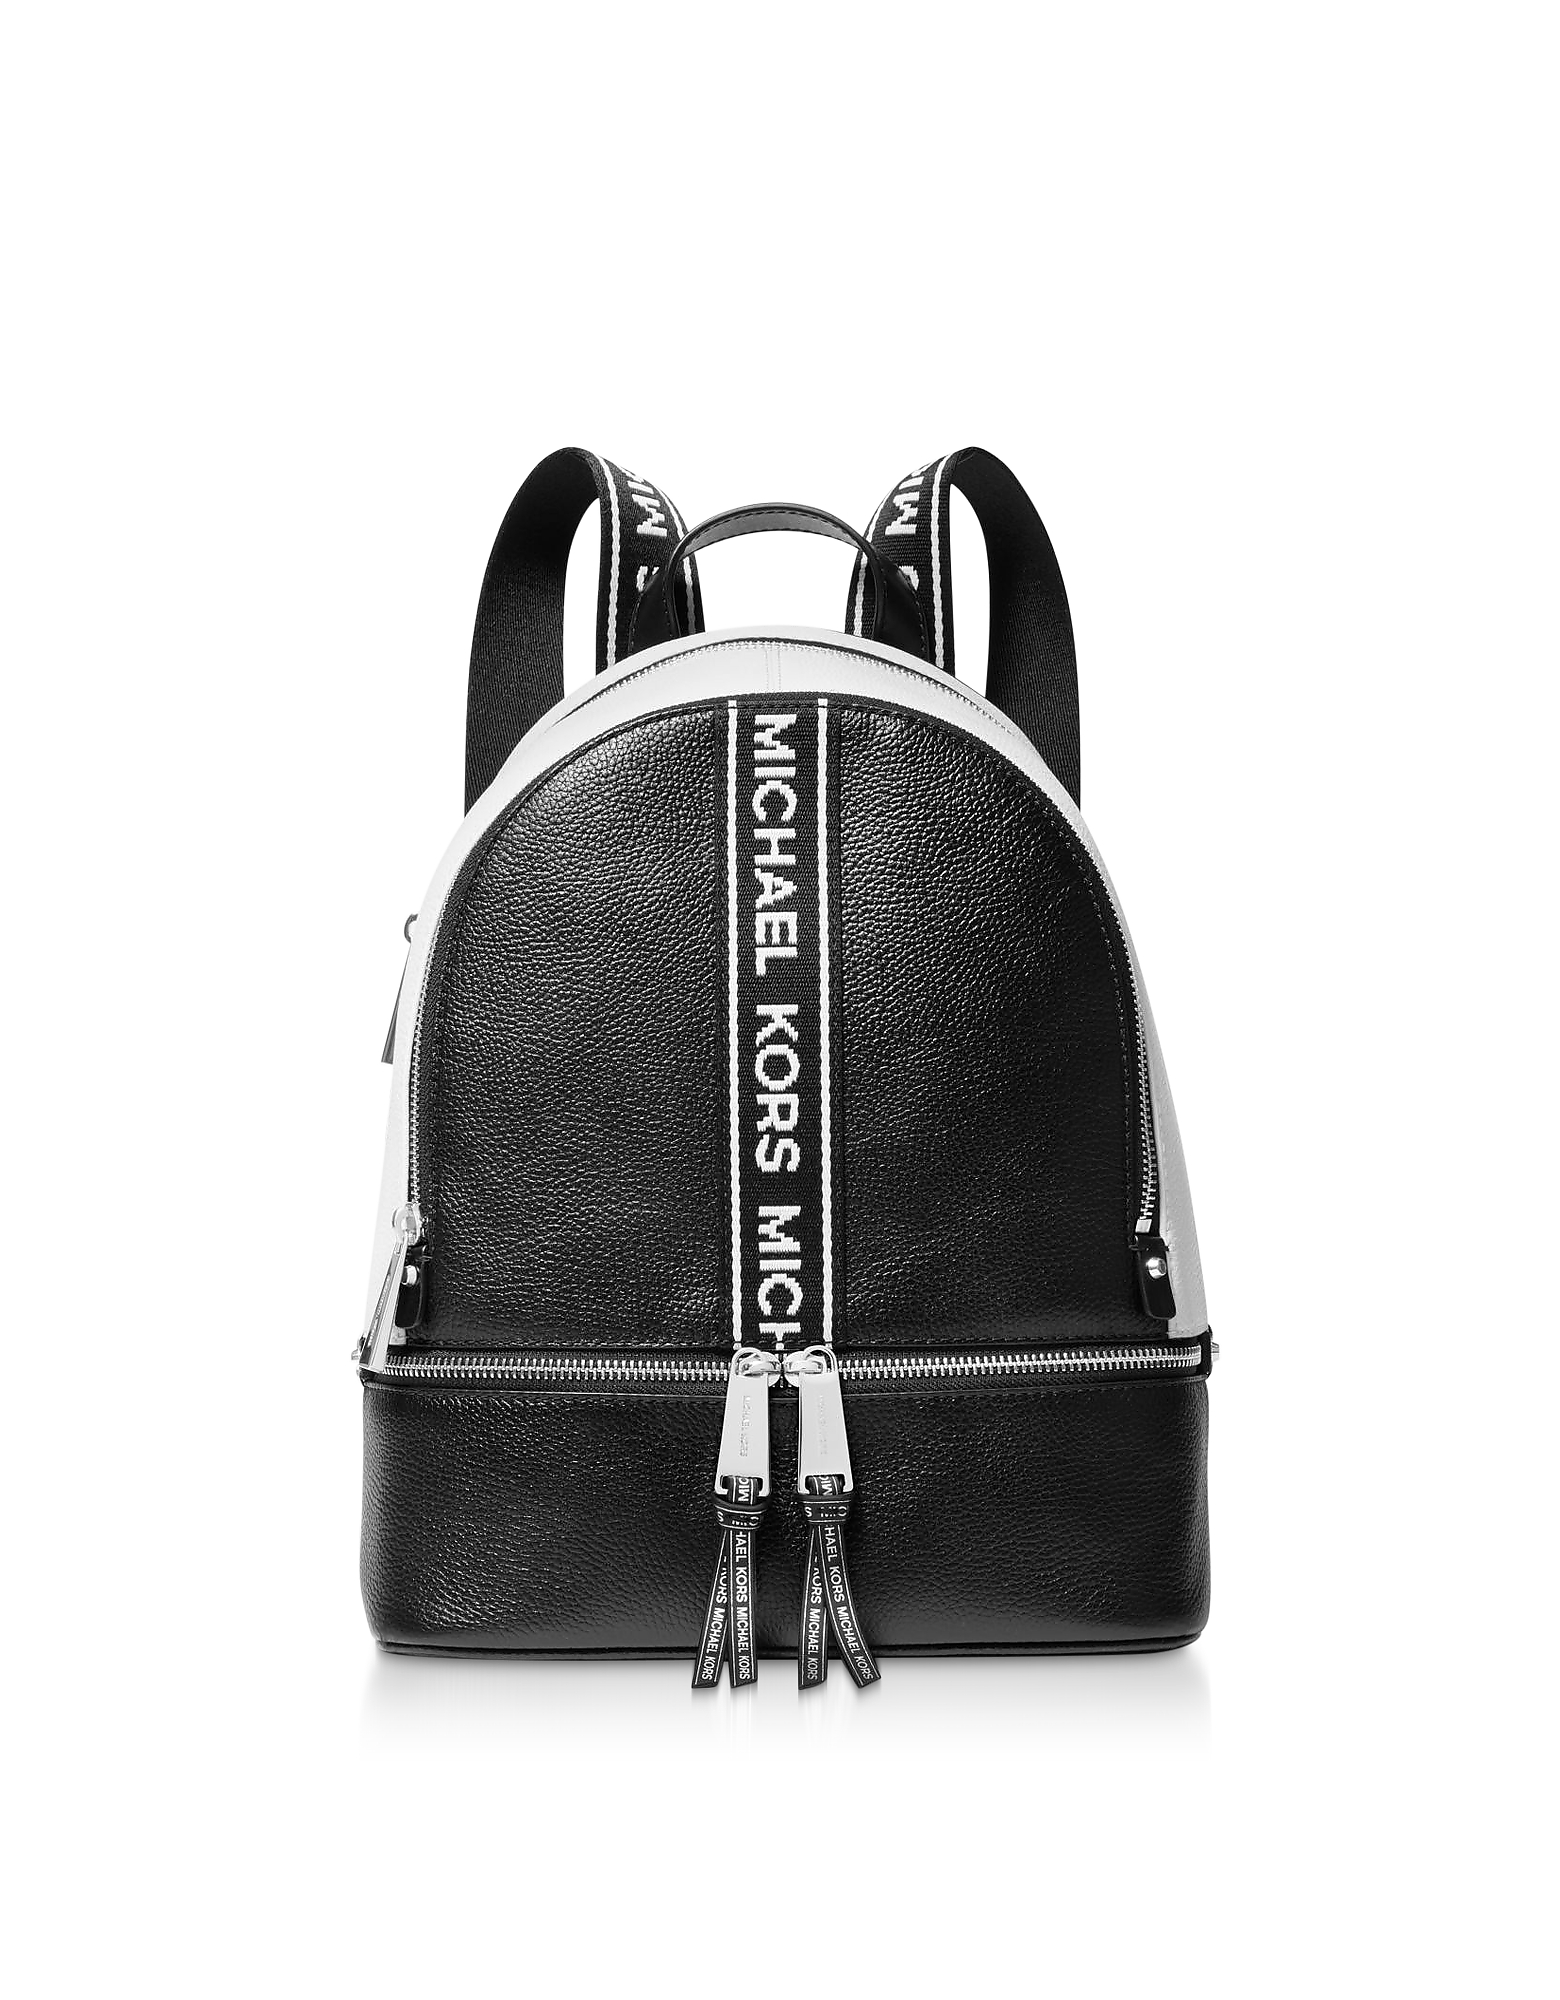 2b9b5125763b Michael Kors Black And White Rhea Zip Medium Backpack In Black   White. SIZE    FIT INFORMATION